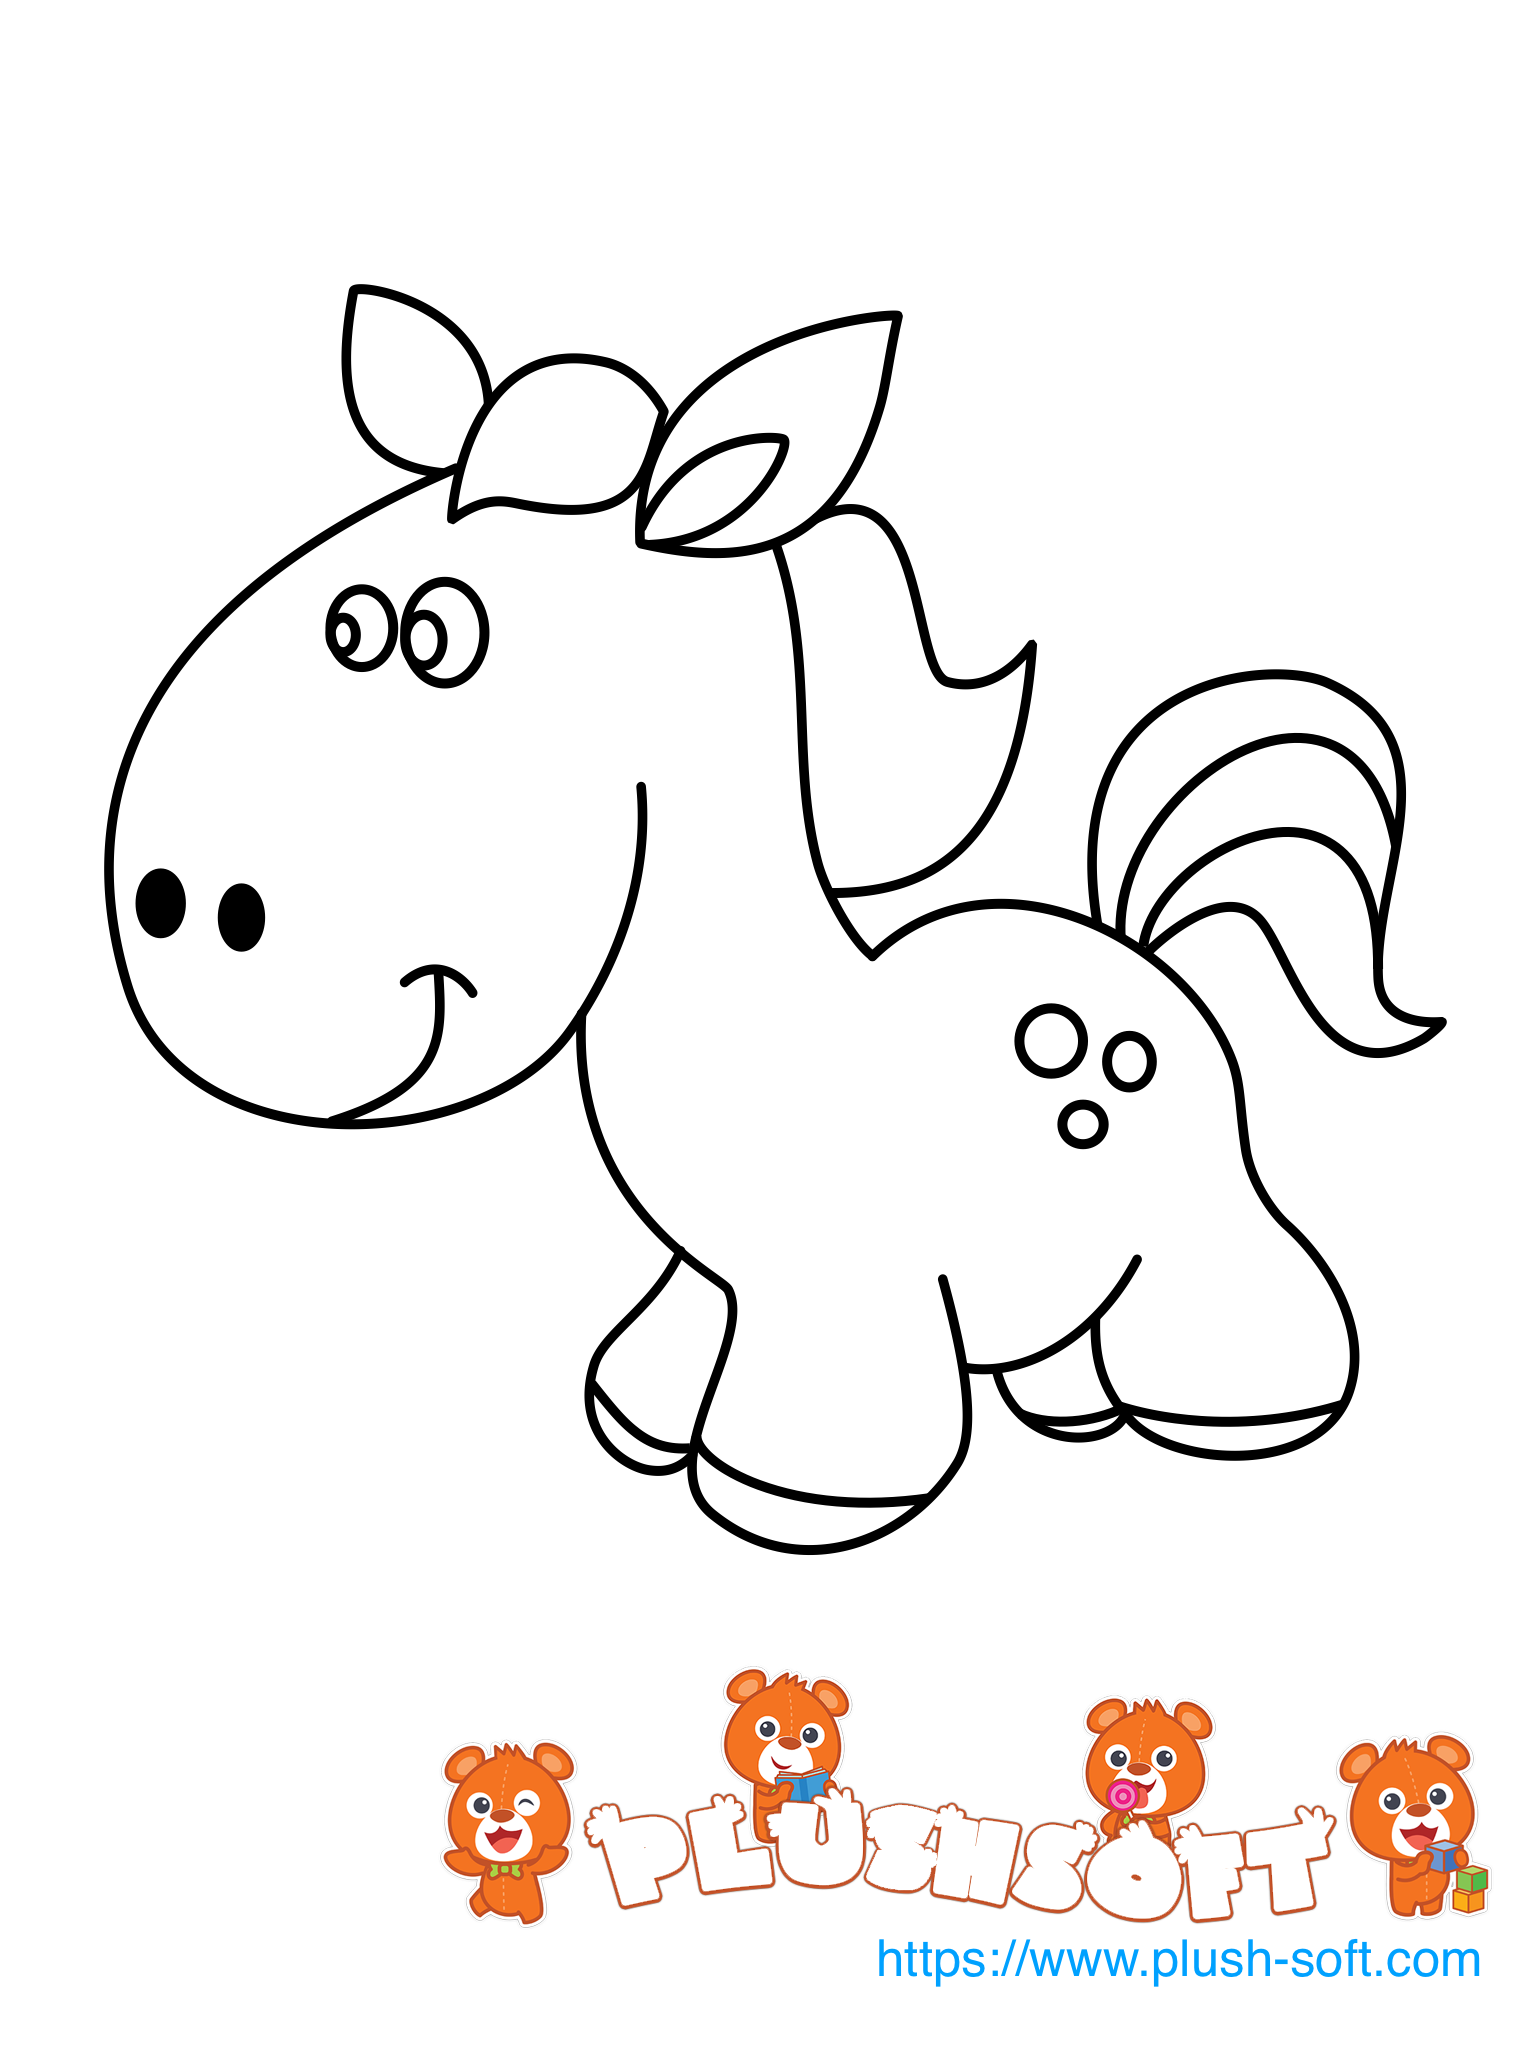 Subscribe For A New Coloring Page Every Day Https Plush Soft